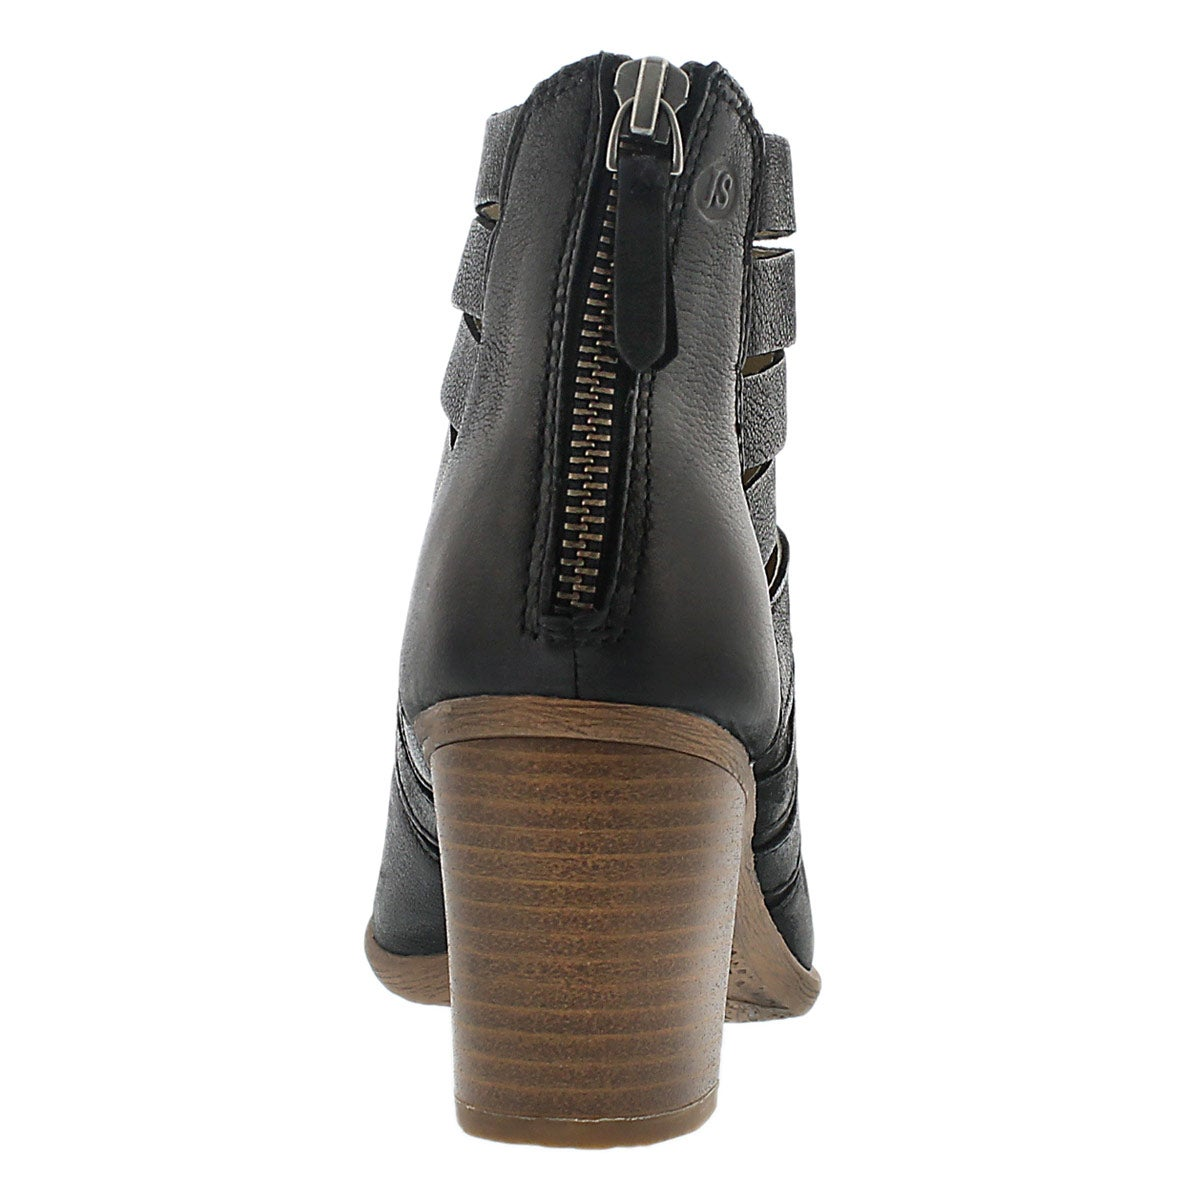 Lds Bonnie 01 black ankle boot